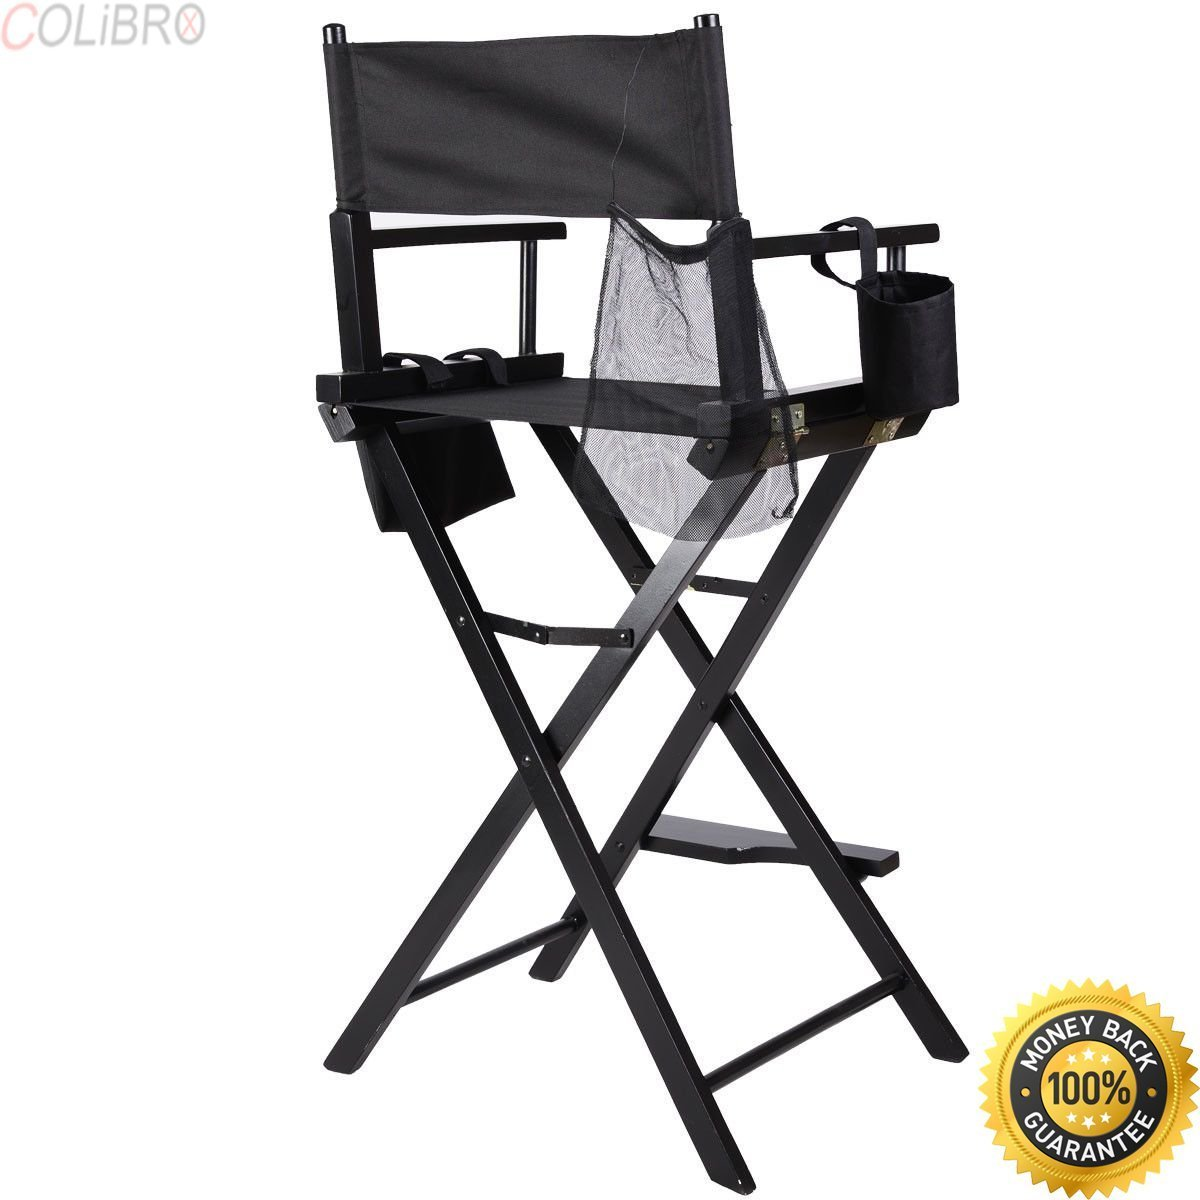 COLIBROX--Professional Makeup Artist Directors Chair Wood Light Weight Foldable Black New Professional Makeup Artist Directors Chair Aluminum Frame Light Weight and Folding Black